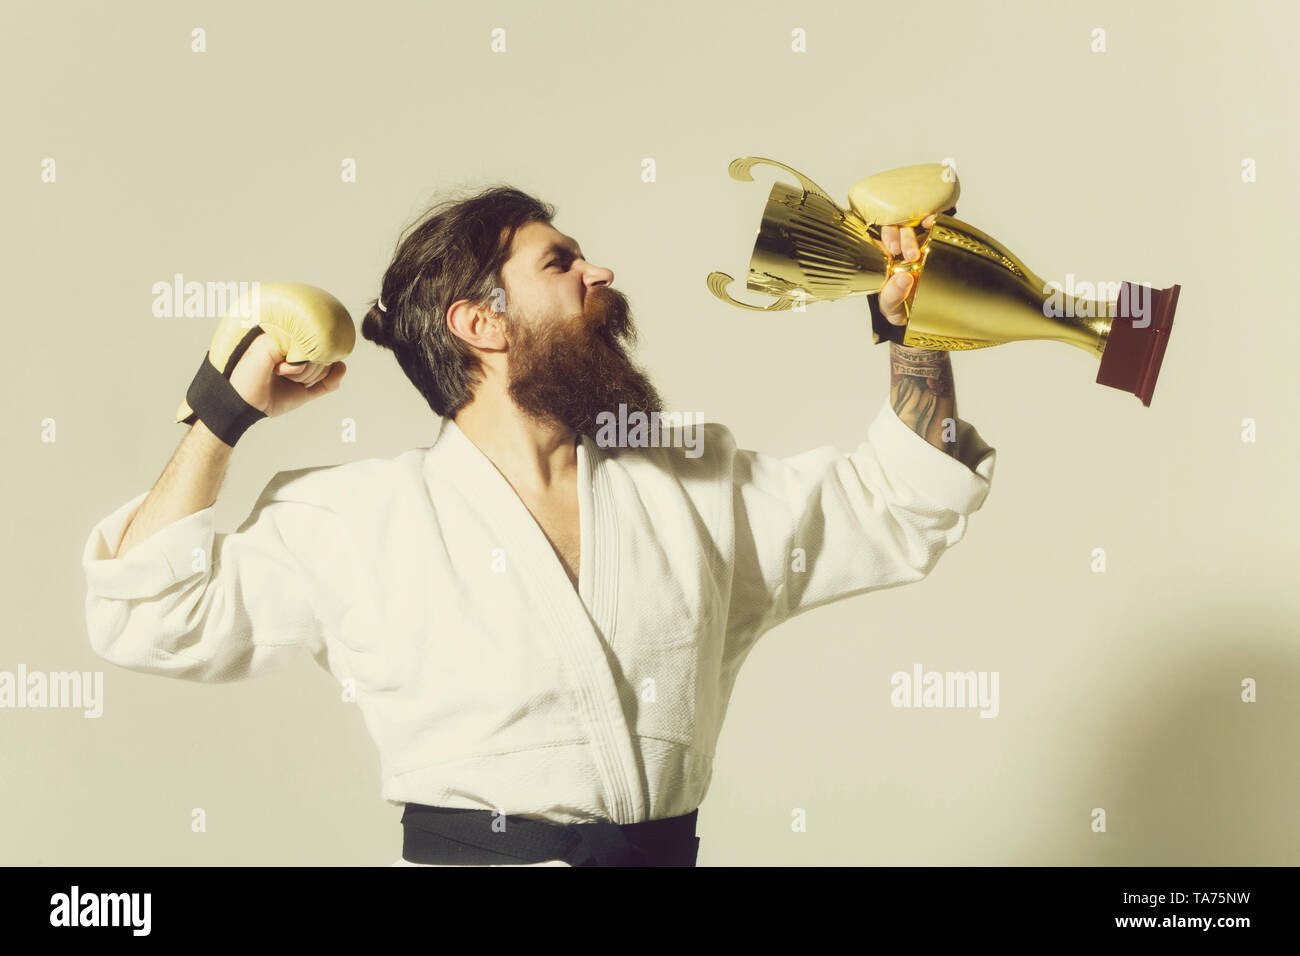 bearded karate man, long beard, brutal caucasian hipster with moustache in white kimono with black belt and boxing gloves with shouting happy face hol - Stock Image